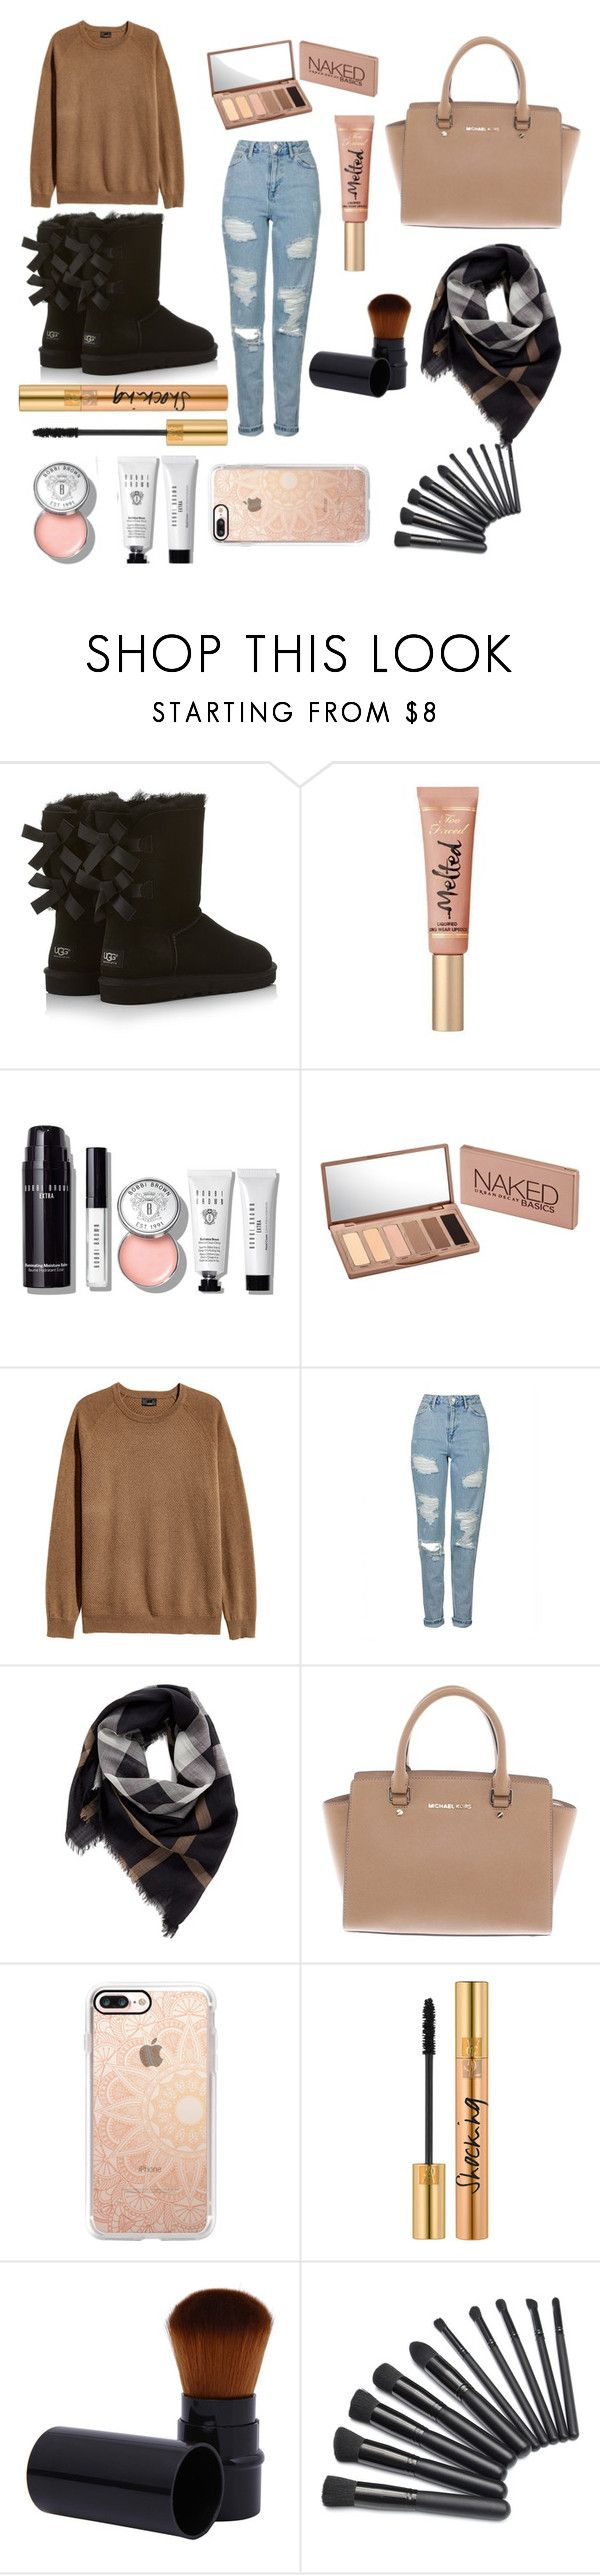 """""""Shocking"""" by jxstme ❤ liked on Polyvore featuring UGG Australia, Too Faced Cosmetics, Bobbi Brown Cosmetics, Urban Decay, Topshop, Burberry, Michael Kors, Casetify and Yves Saint Laurent"""